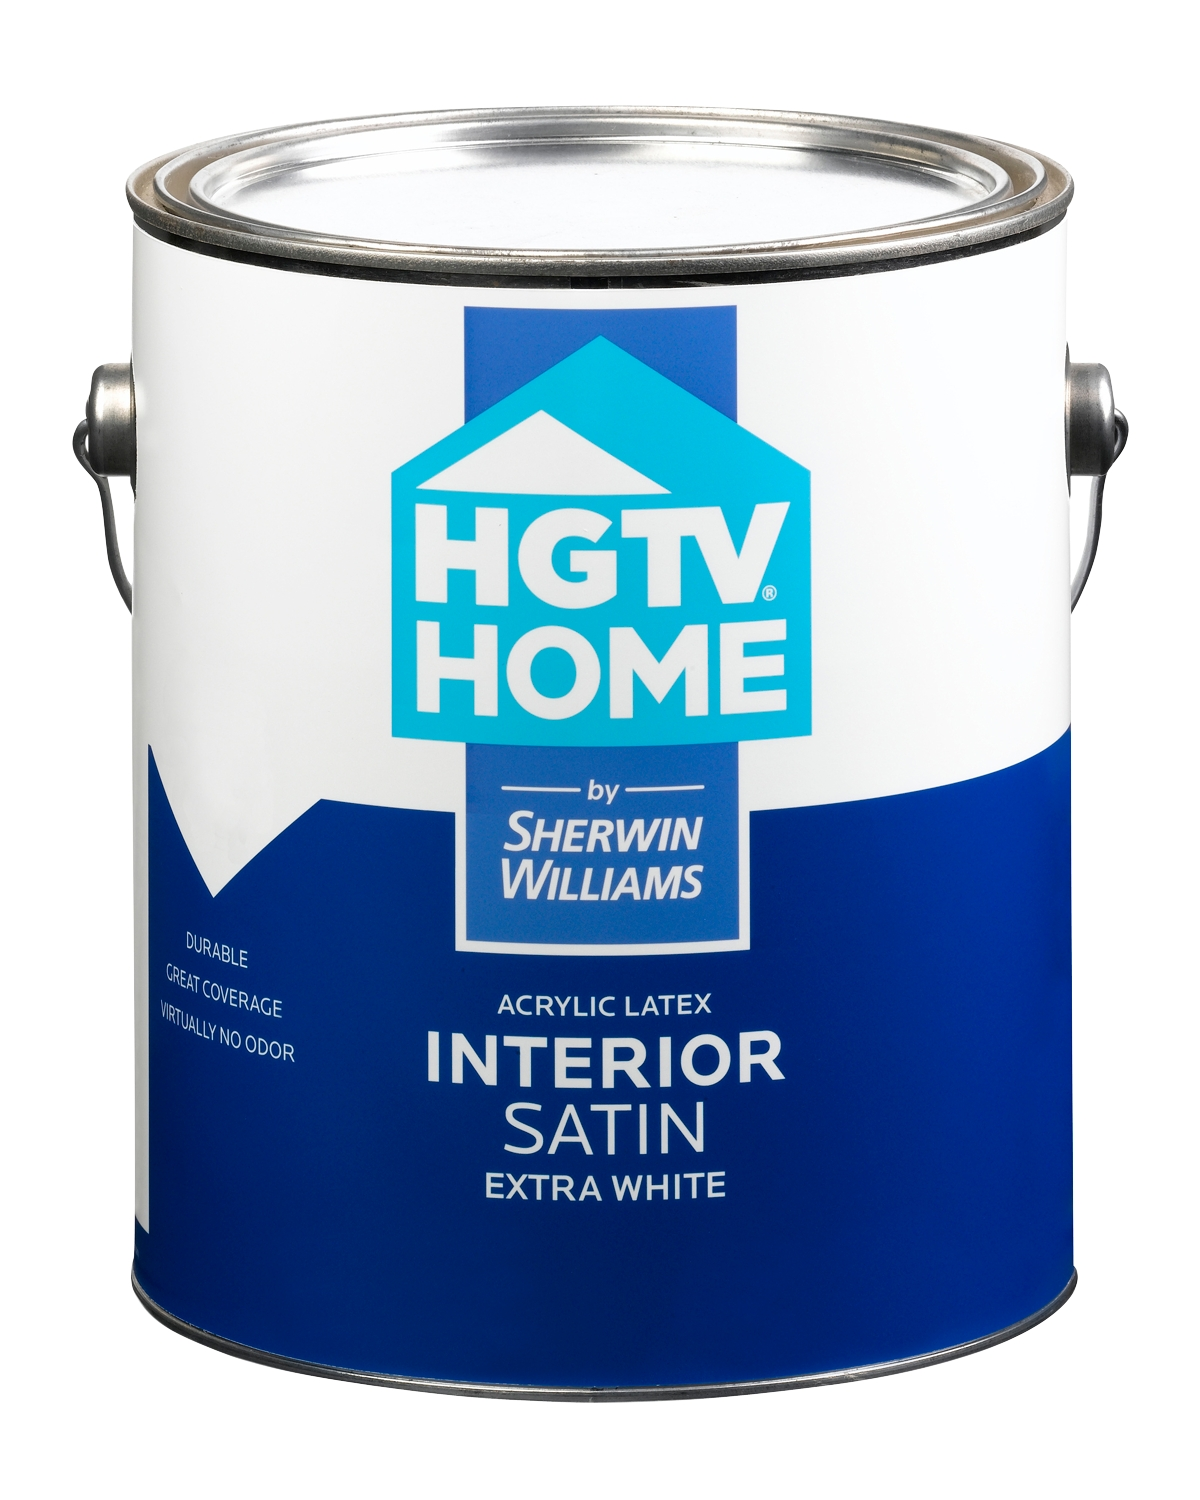 Hgtv Home By Sherwin Williams Interior Paint Sherwin Williams And Hgtv